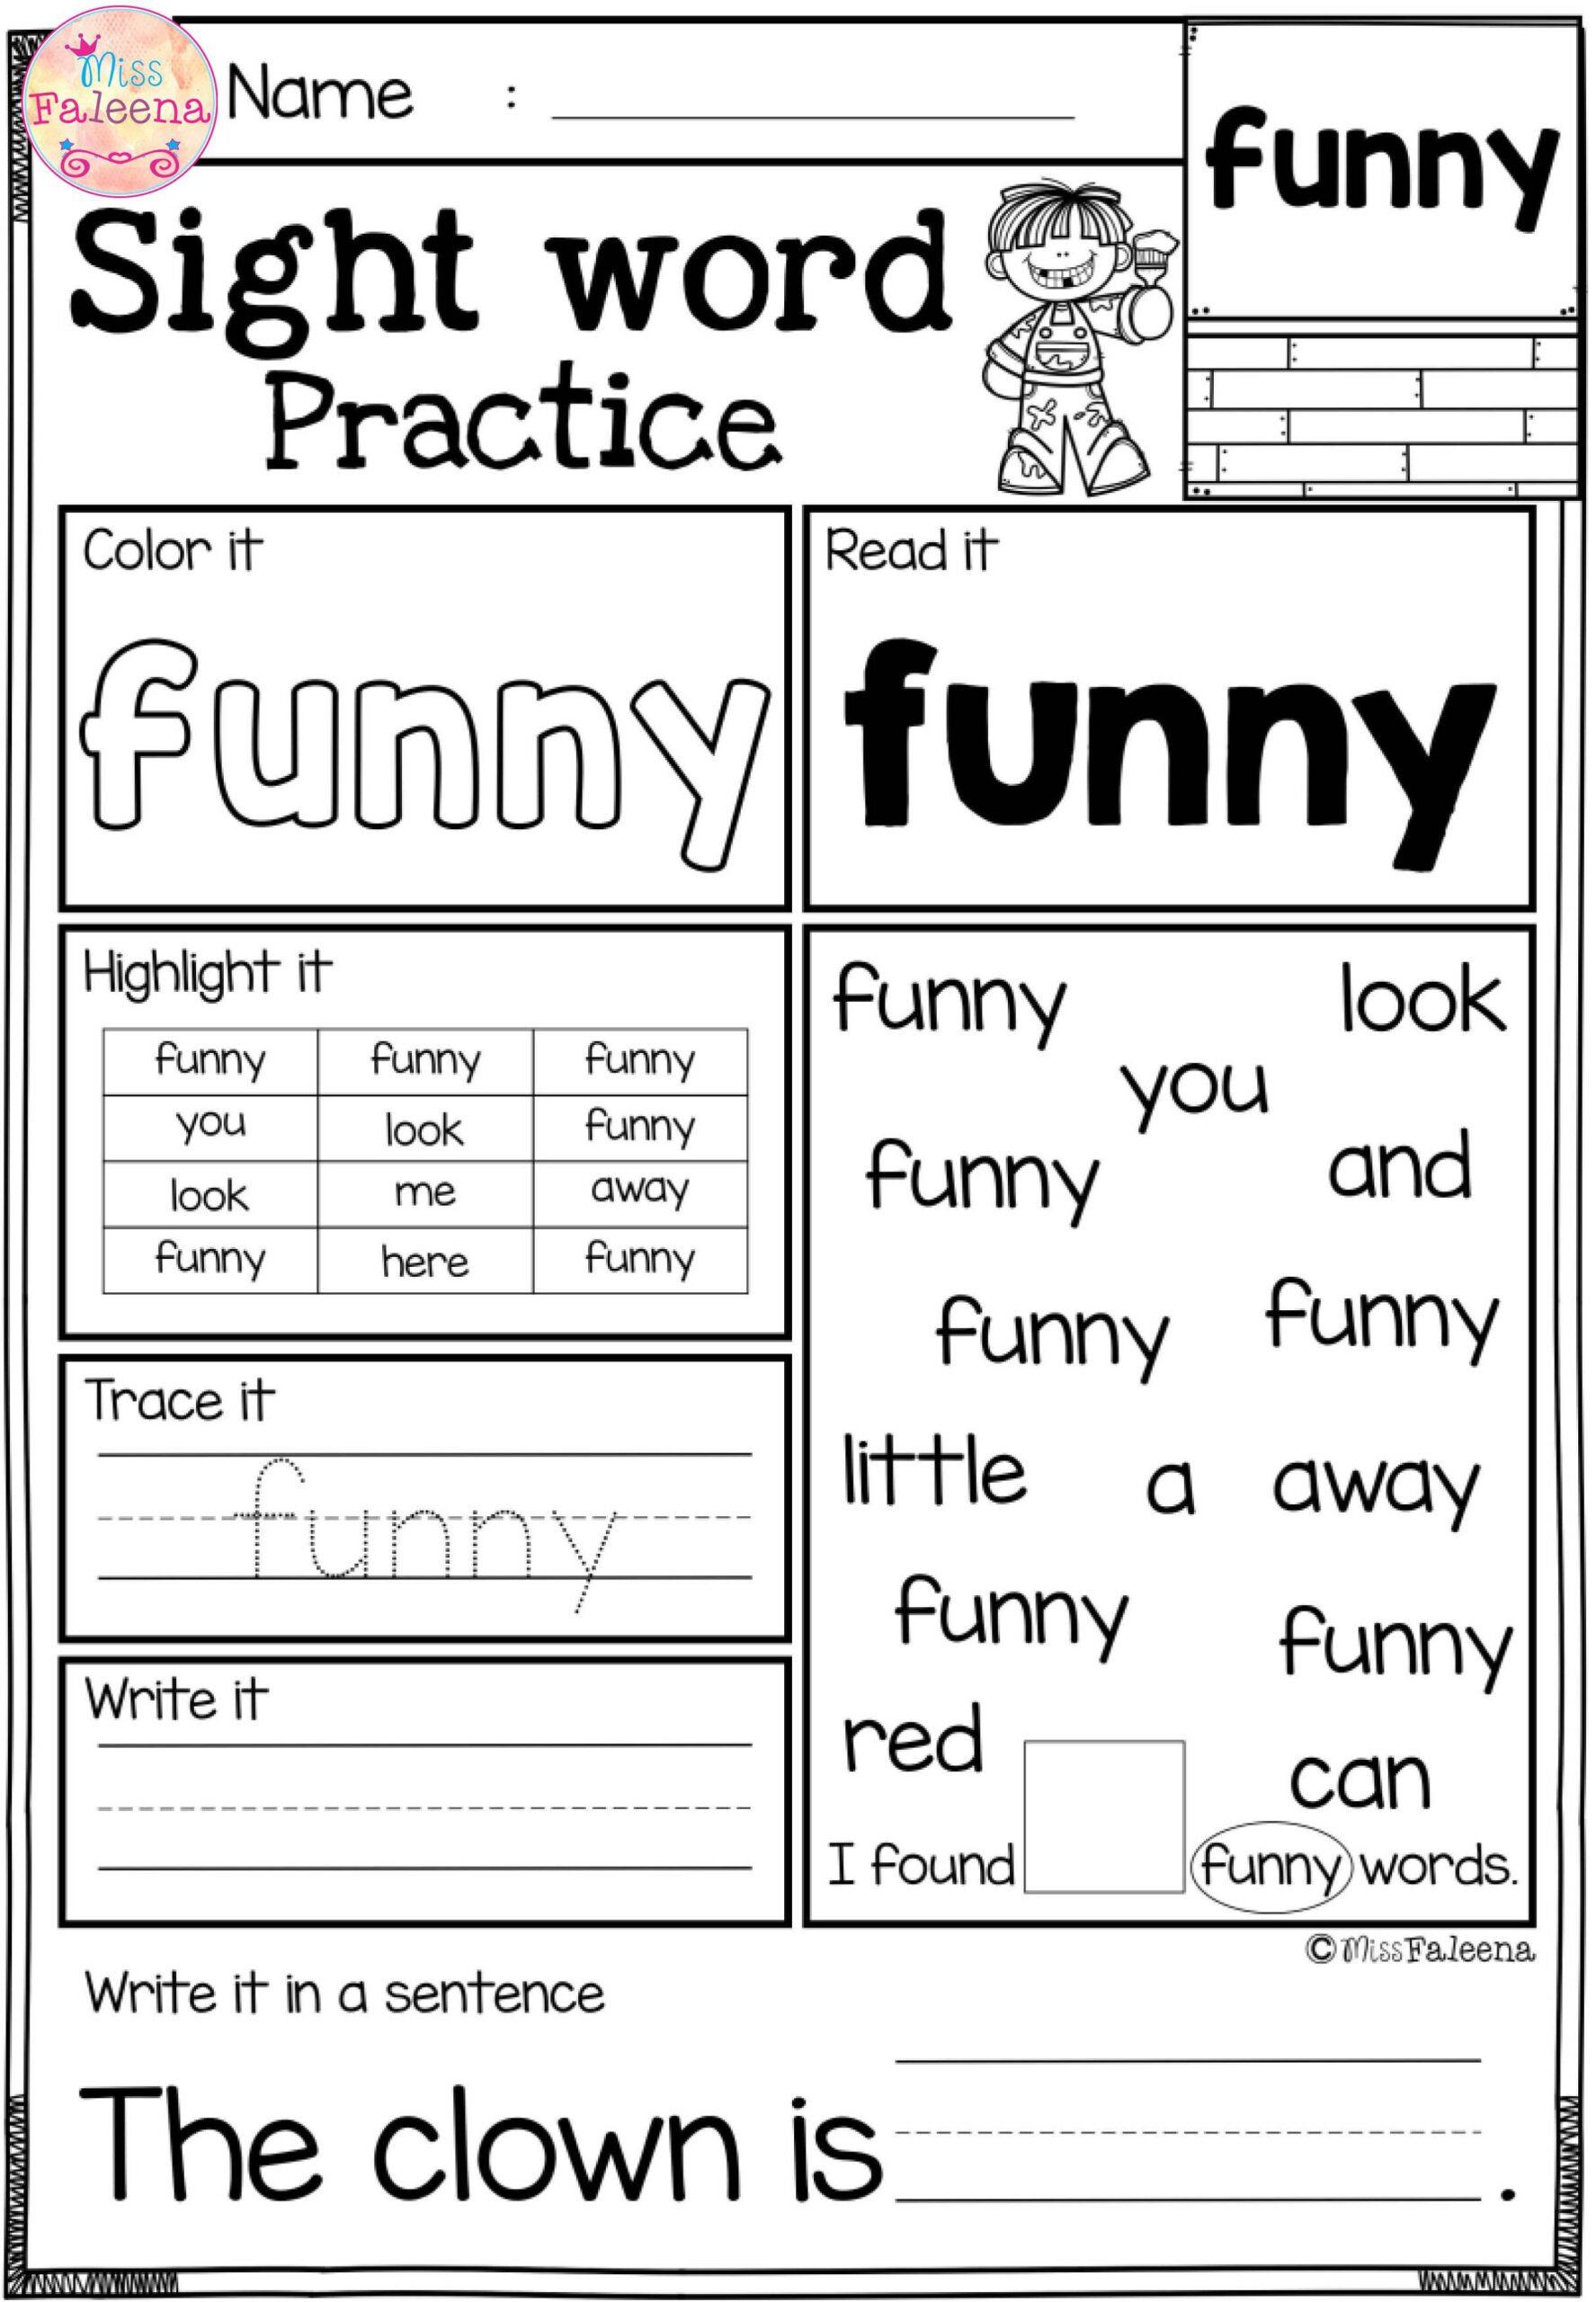 2nd Grade Sight Words Worksheet Free Sight Word Practice Fun Worksheets Grade Math Lessons